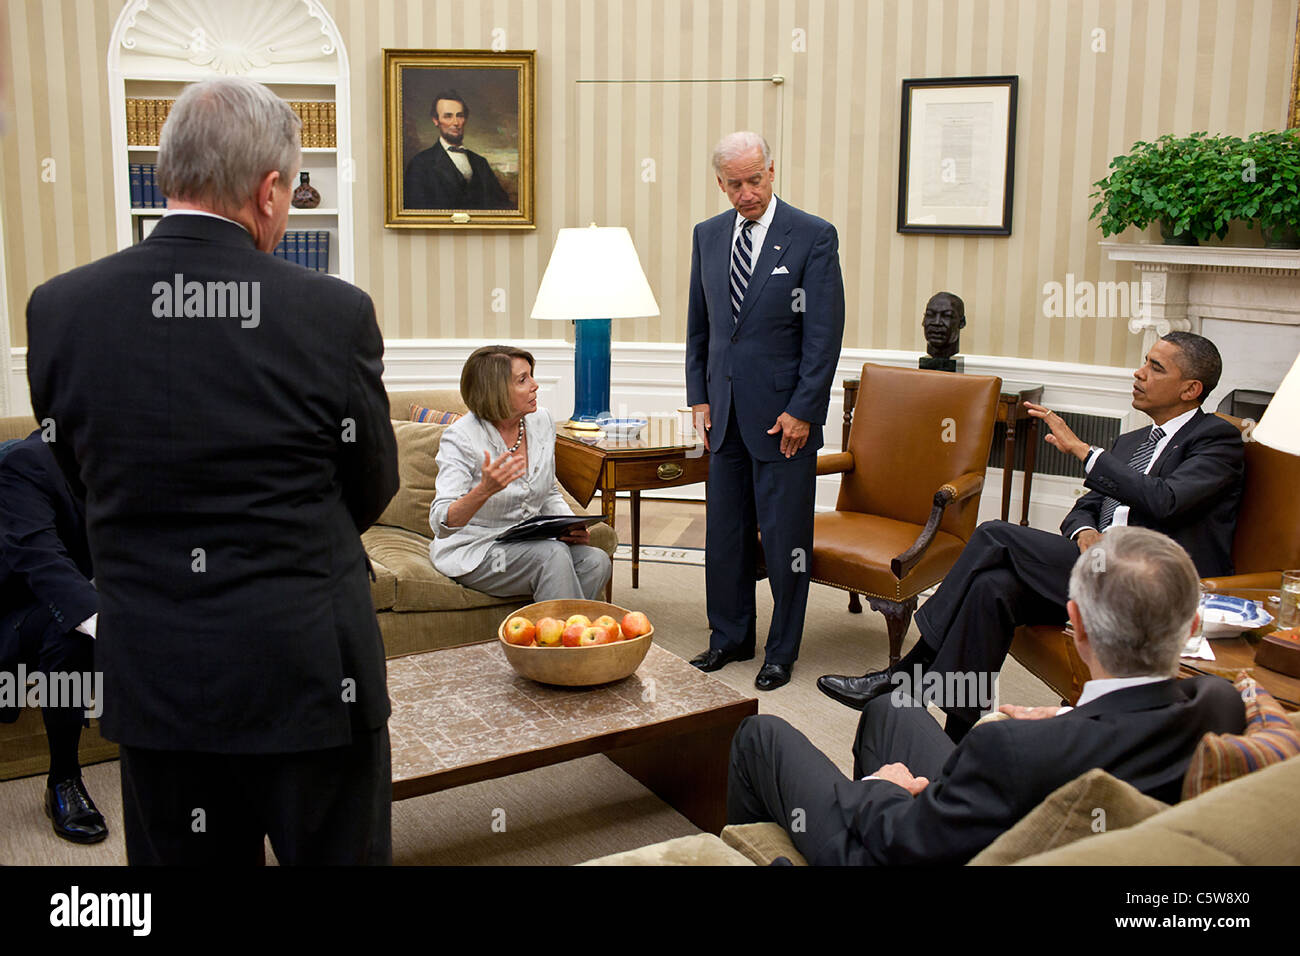 President Barack Obama and Vice President Joe Biden meet the Democratic leadership on the debt crisis - Stock Image